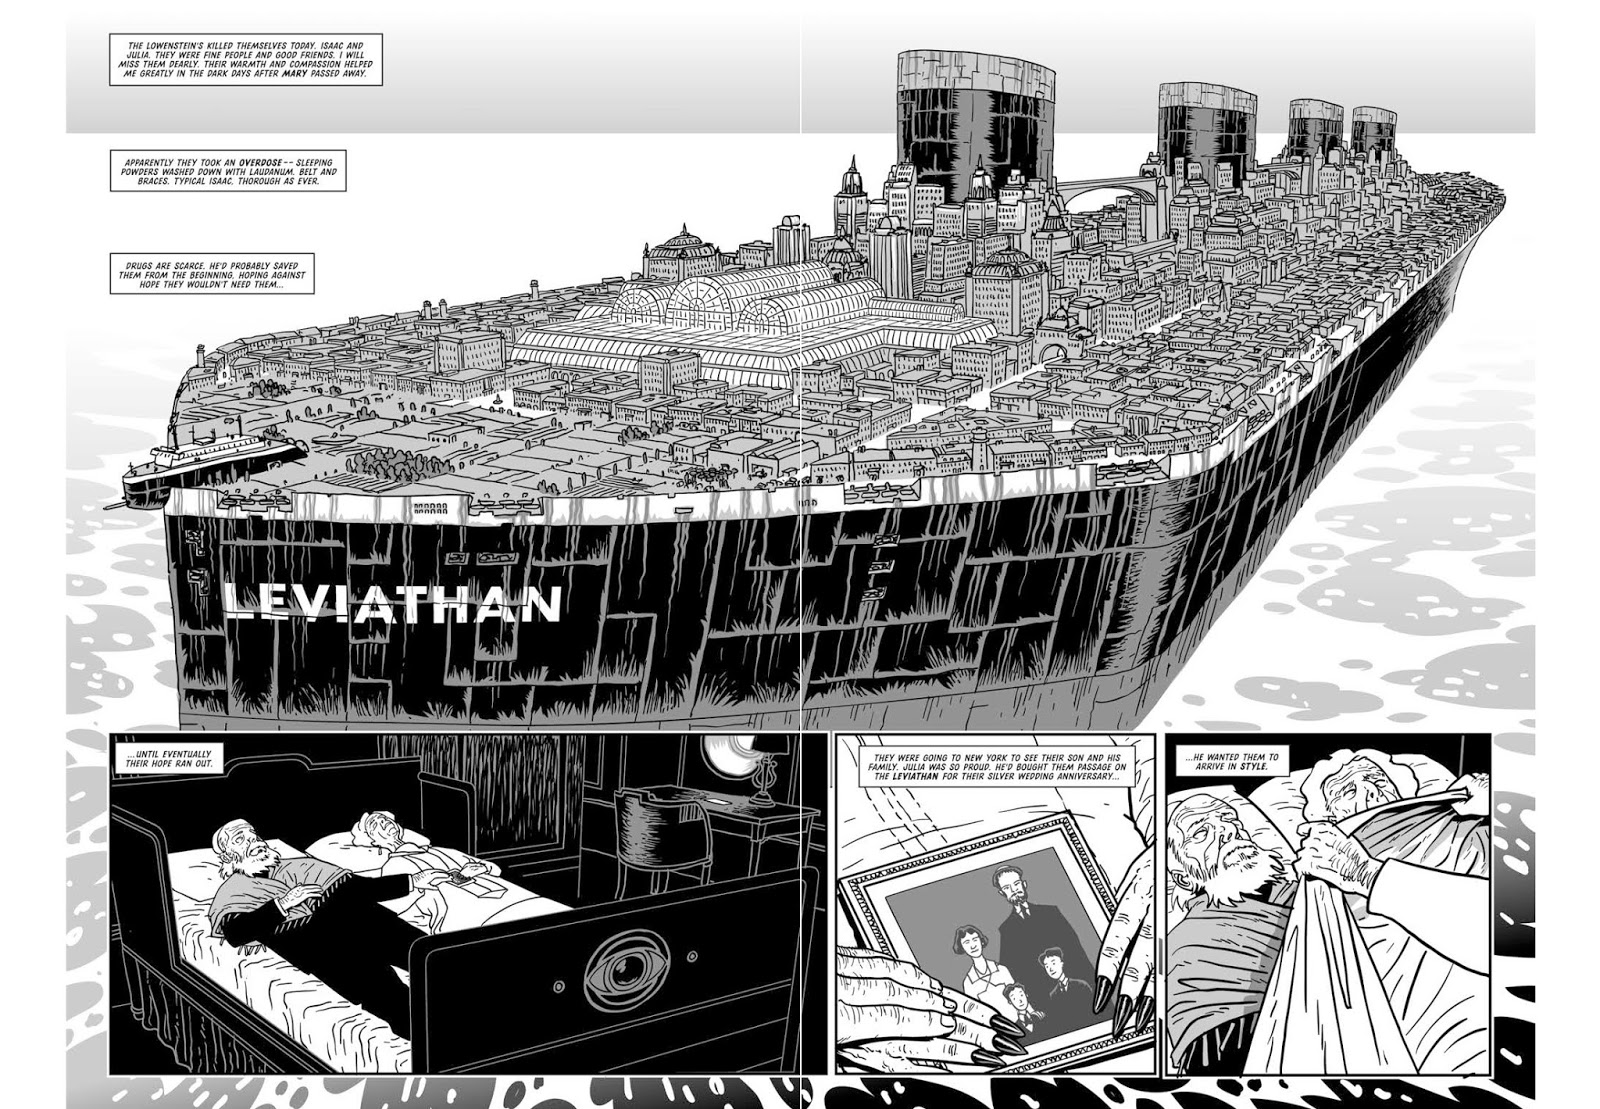 Leviathan graphic novel review